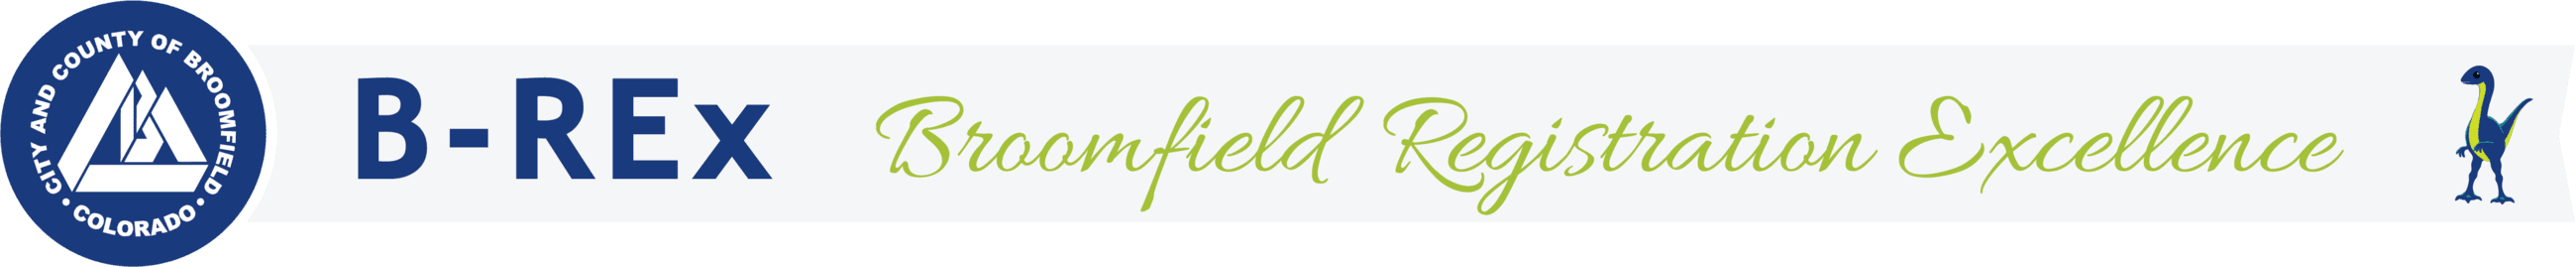 B-REx: Broomfield Registration Excellence